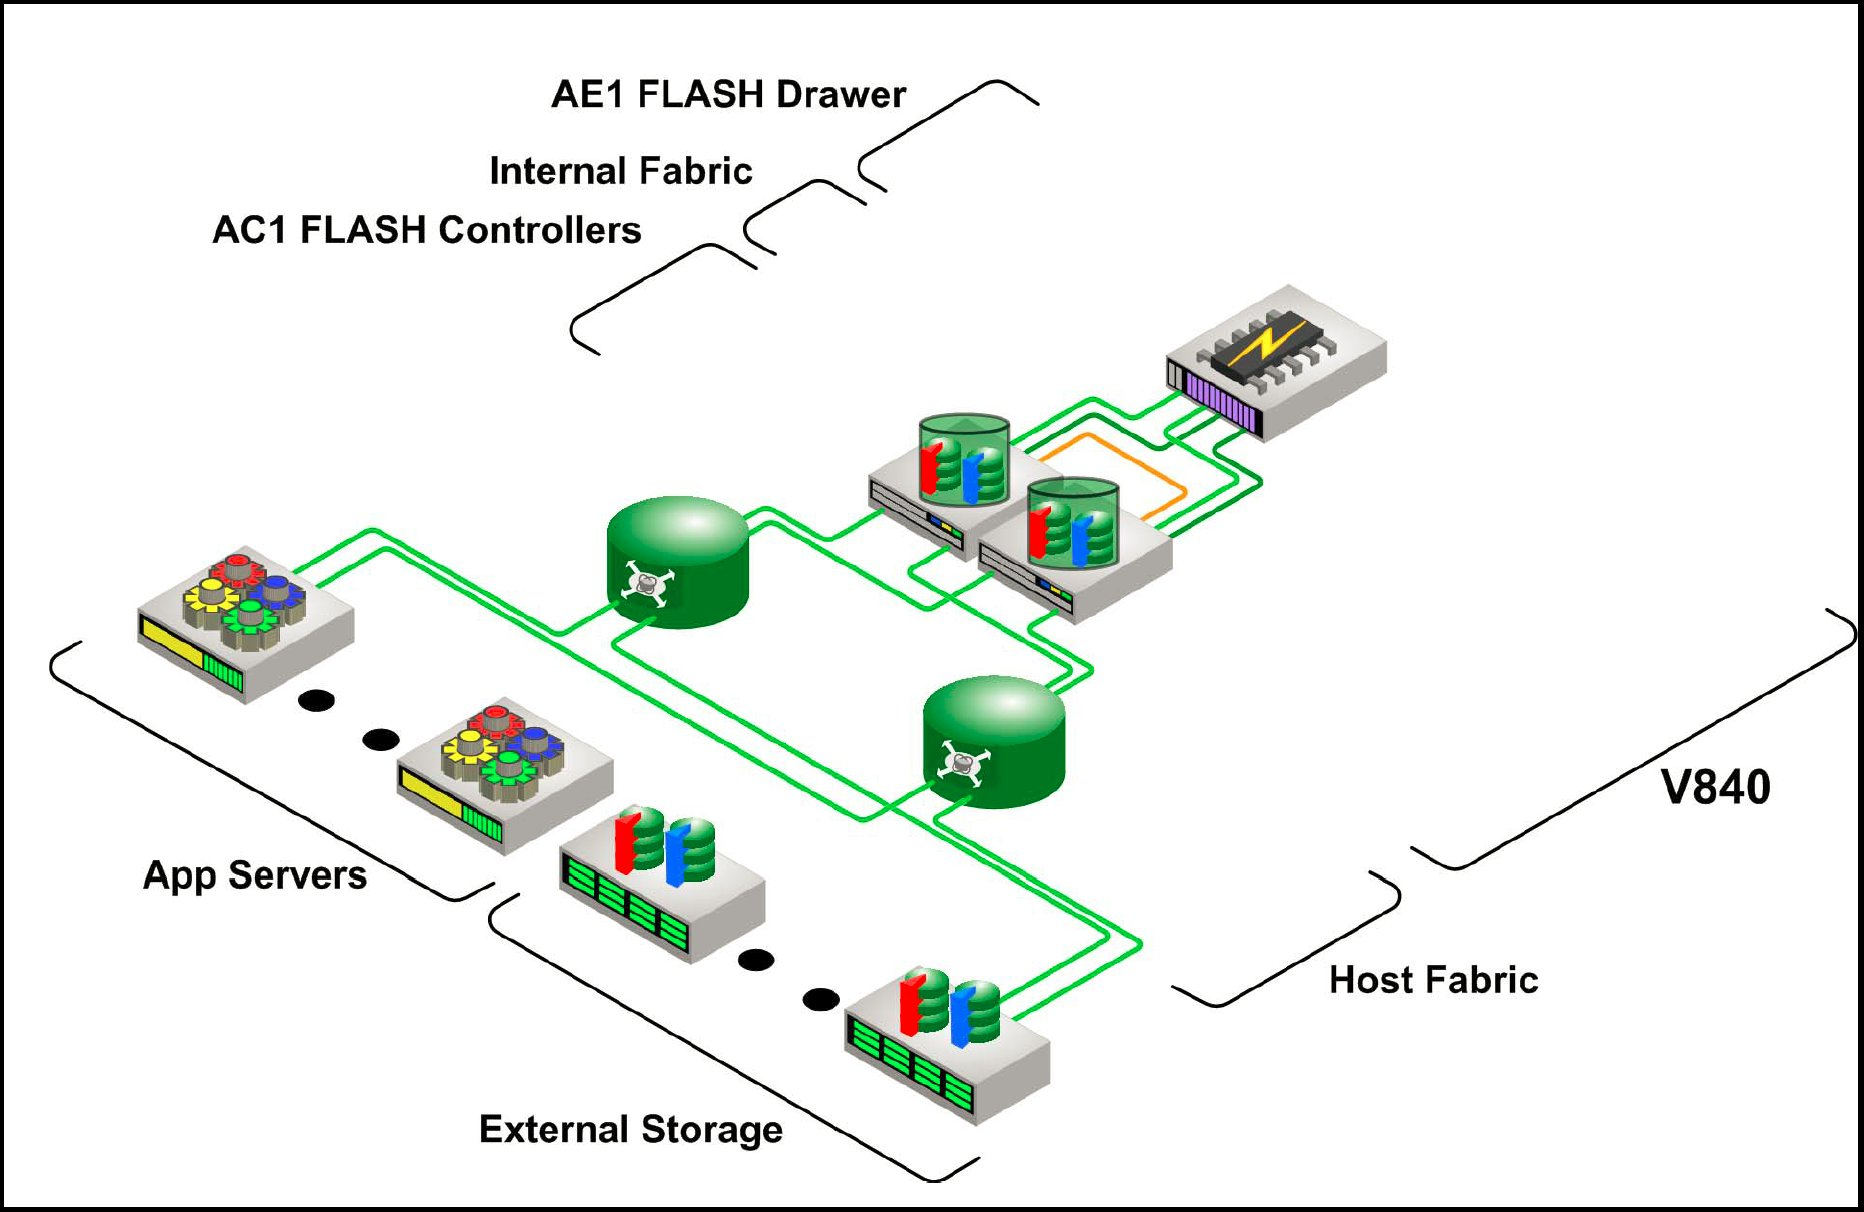 Flash drawer, internal fabric, Flash controllers, app servers, external storage, host fabric, and V840